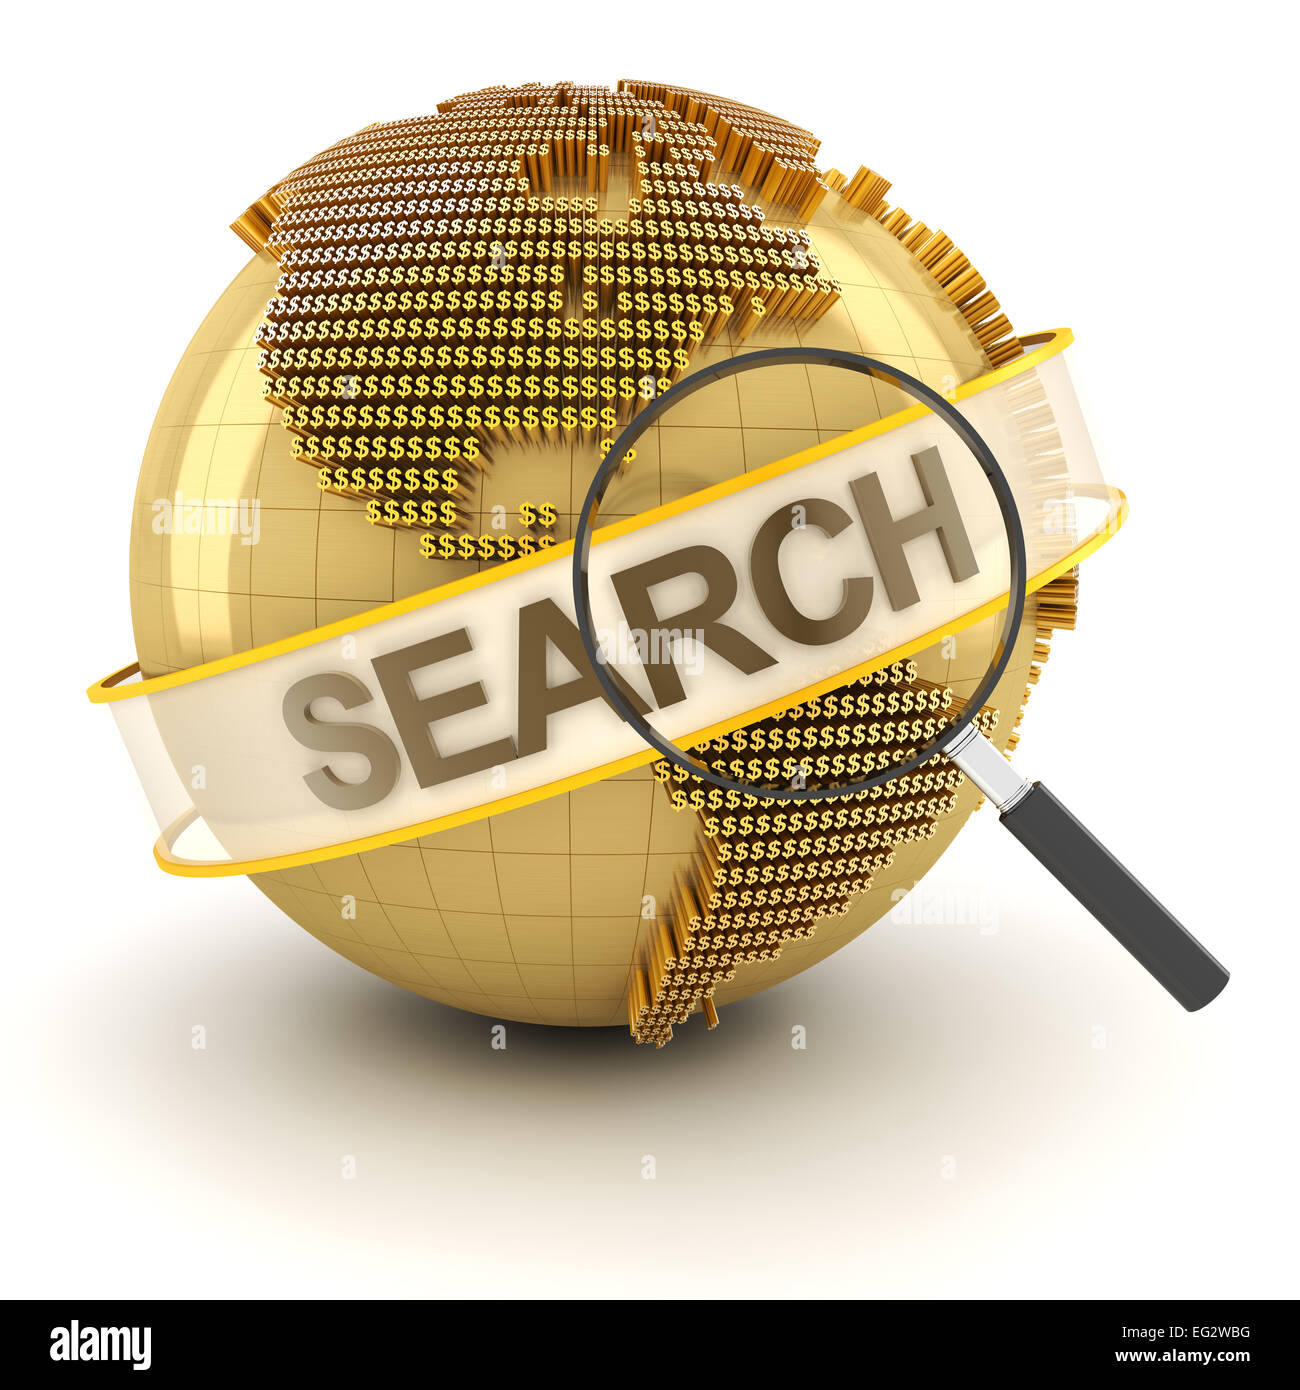 Search for global investment opportunity, 3d render - Stock Image